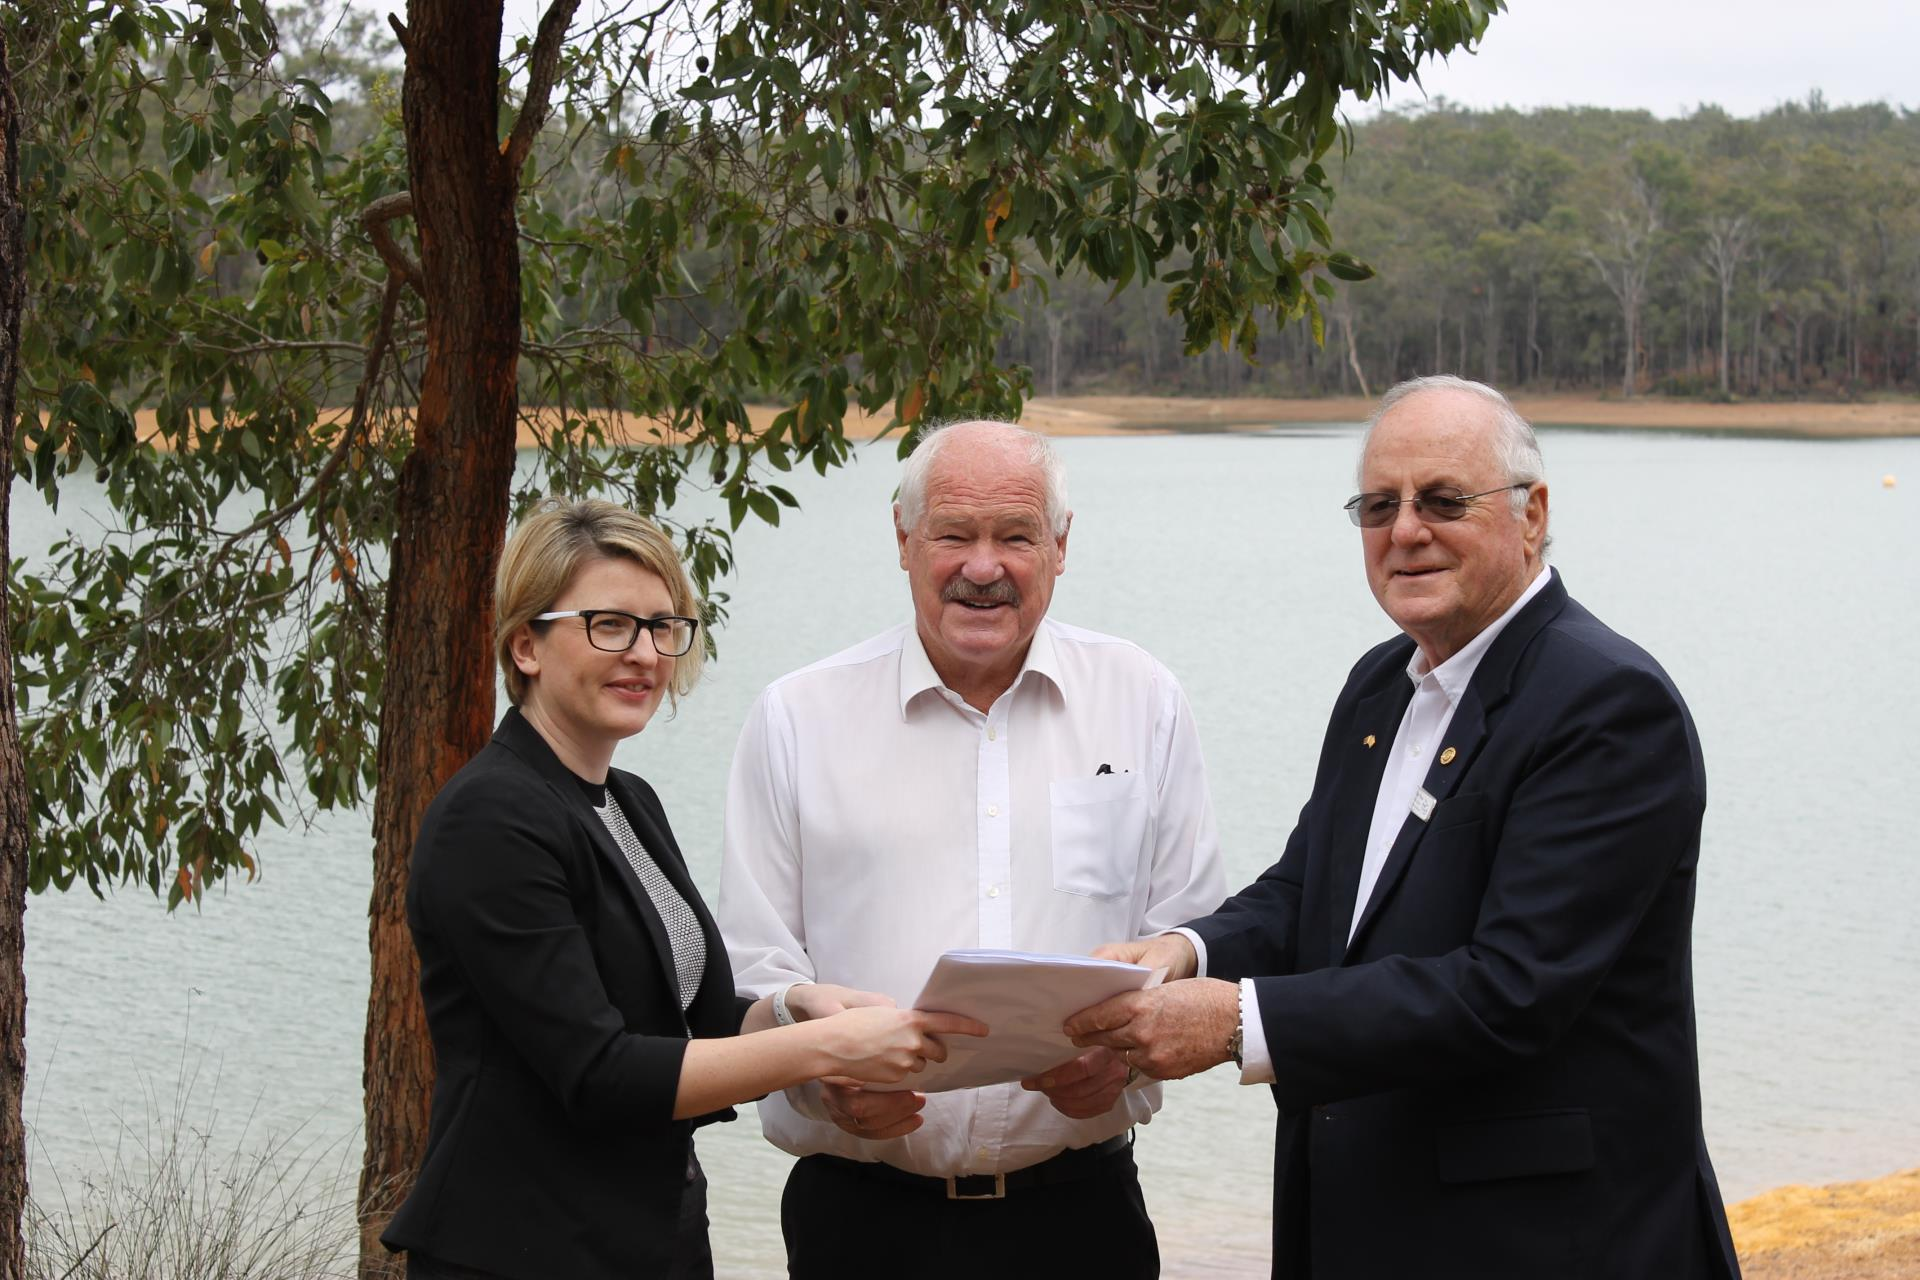 MEDIA RELEASE: Partnership between Shires to boost local tourism